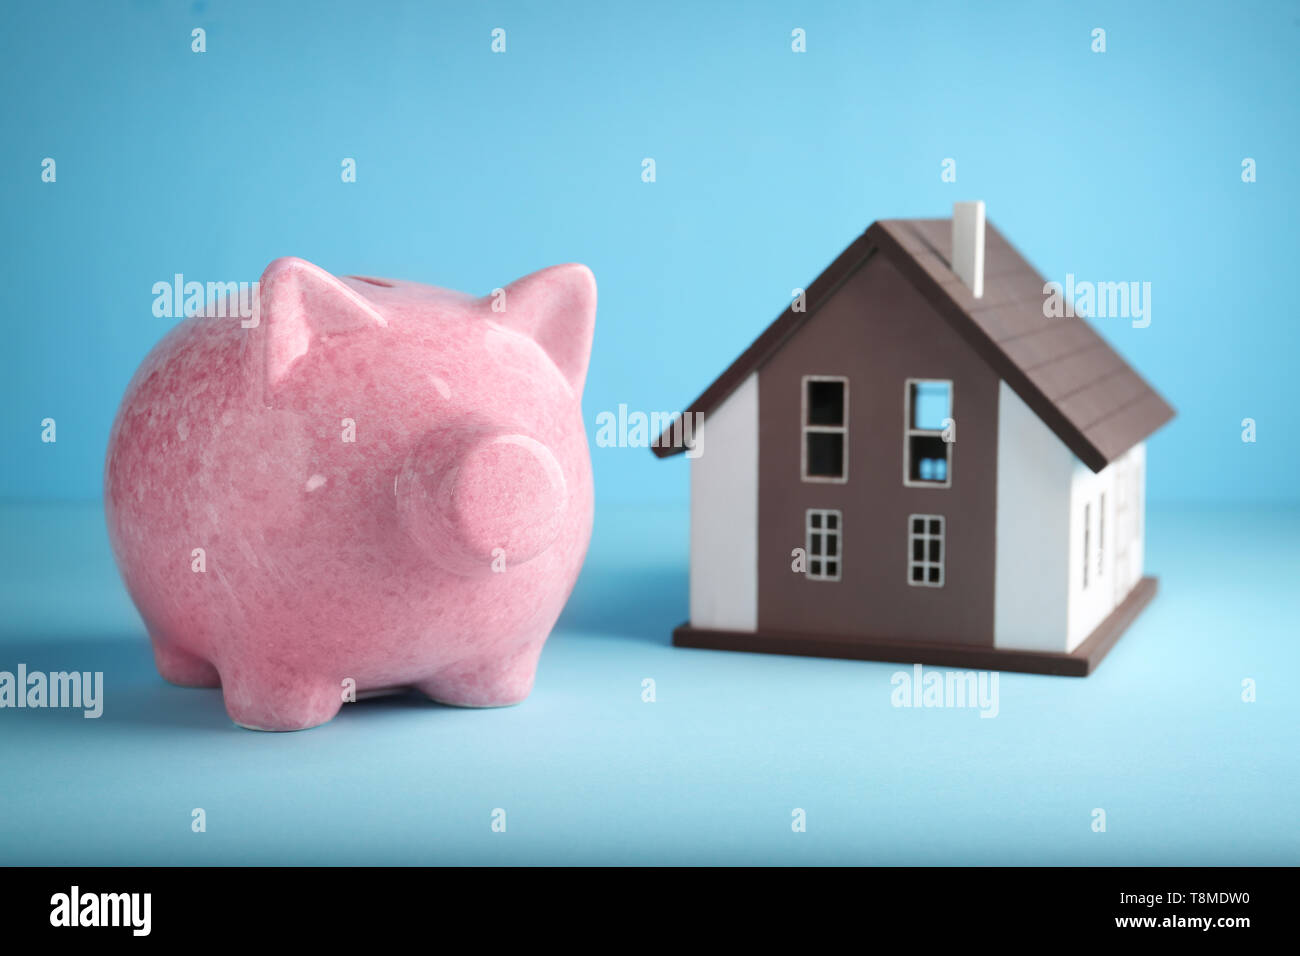 Cute piggy bank with house model on color background - Stock Image